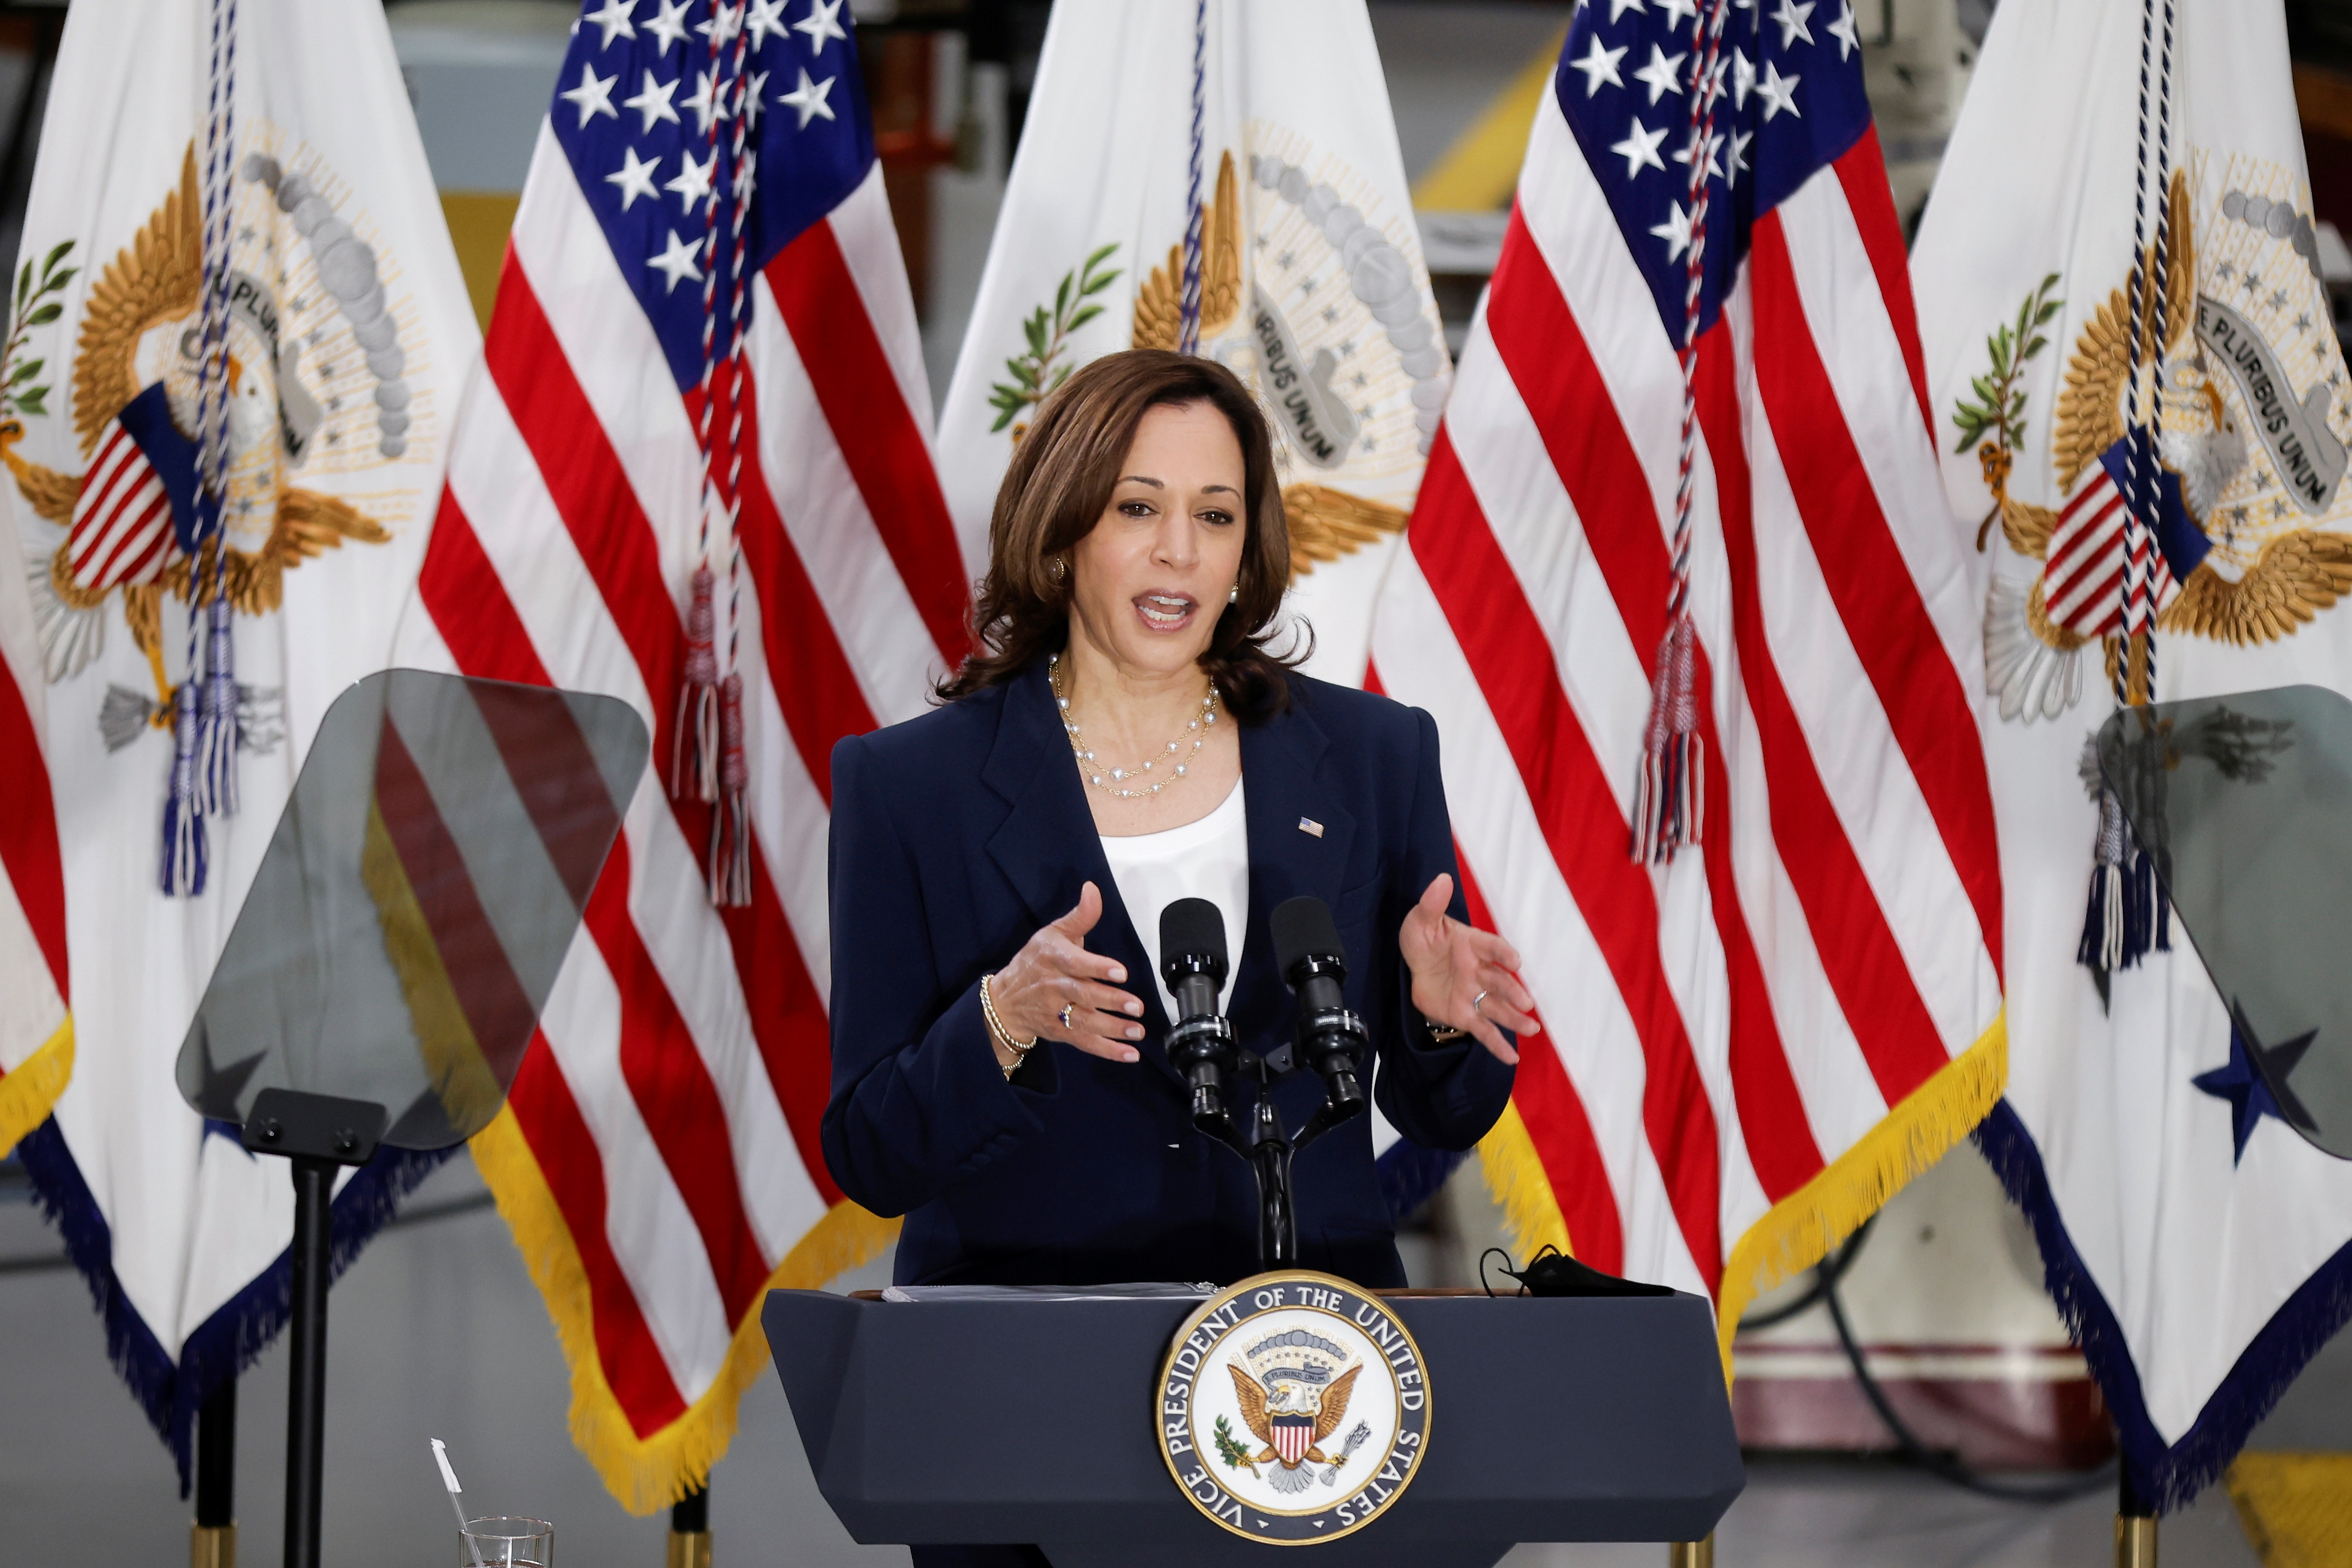 U.S. Vice President Kamala Harris delivers remarks on American Economic Recovery during a speech at Guilford Technical Community College in Greensboro, North Carolina, U.S., April 19, 2021. REUTERS/Tom Brenner